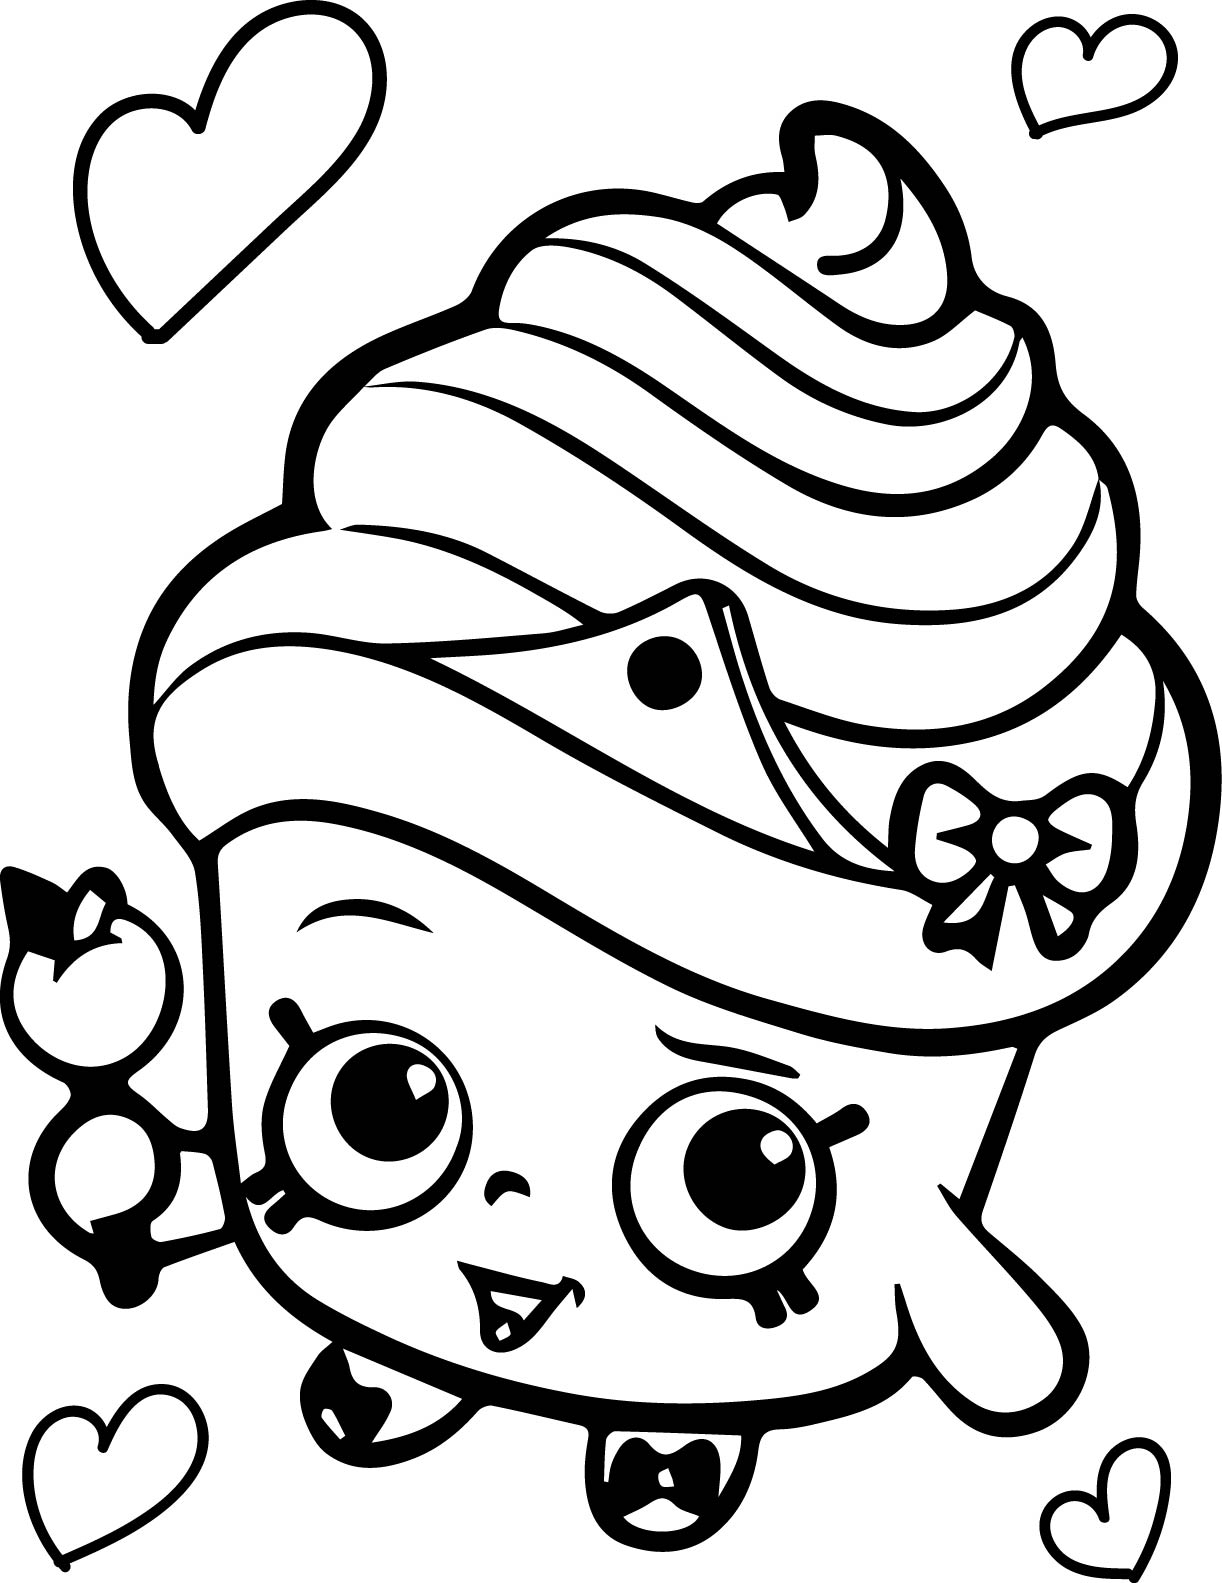 Coloring games of shopkins - Shopkins Cupcake Queen Coloring Page